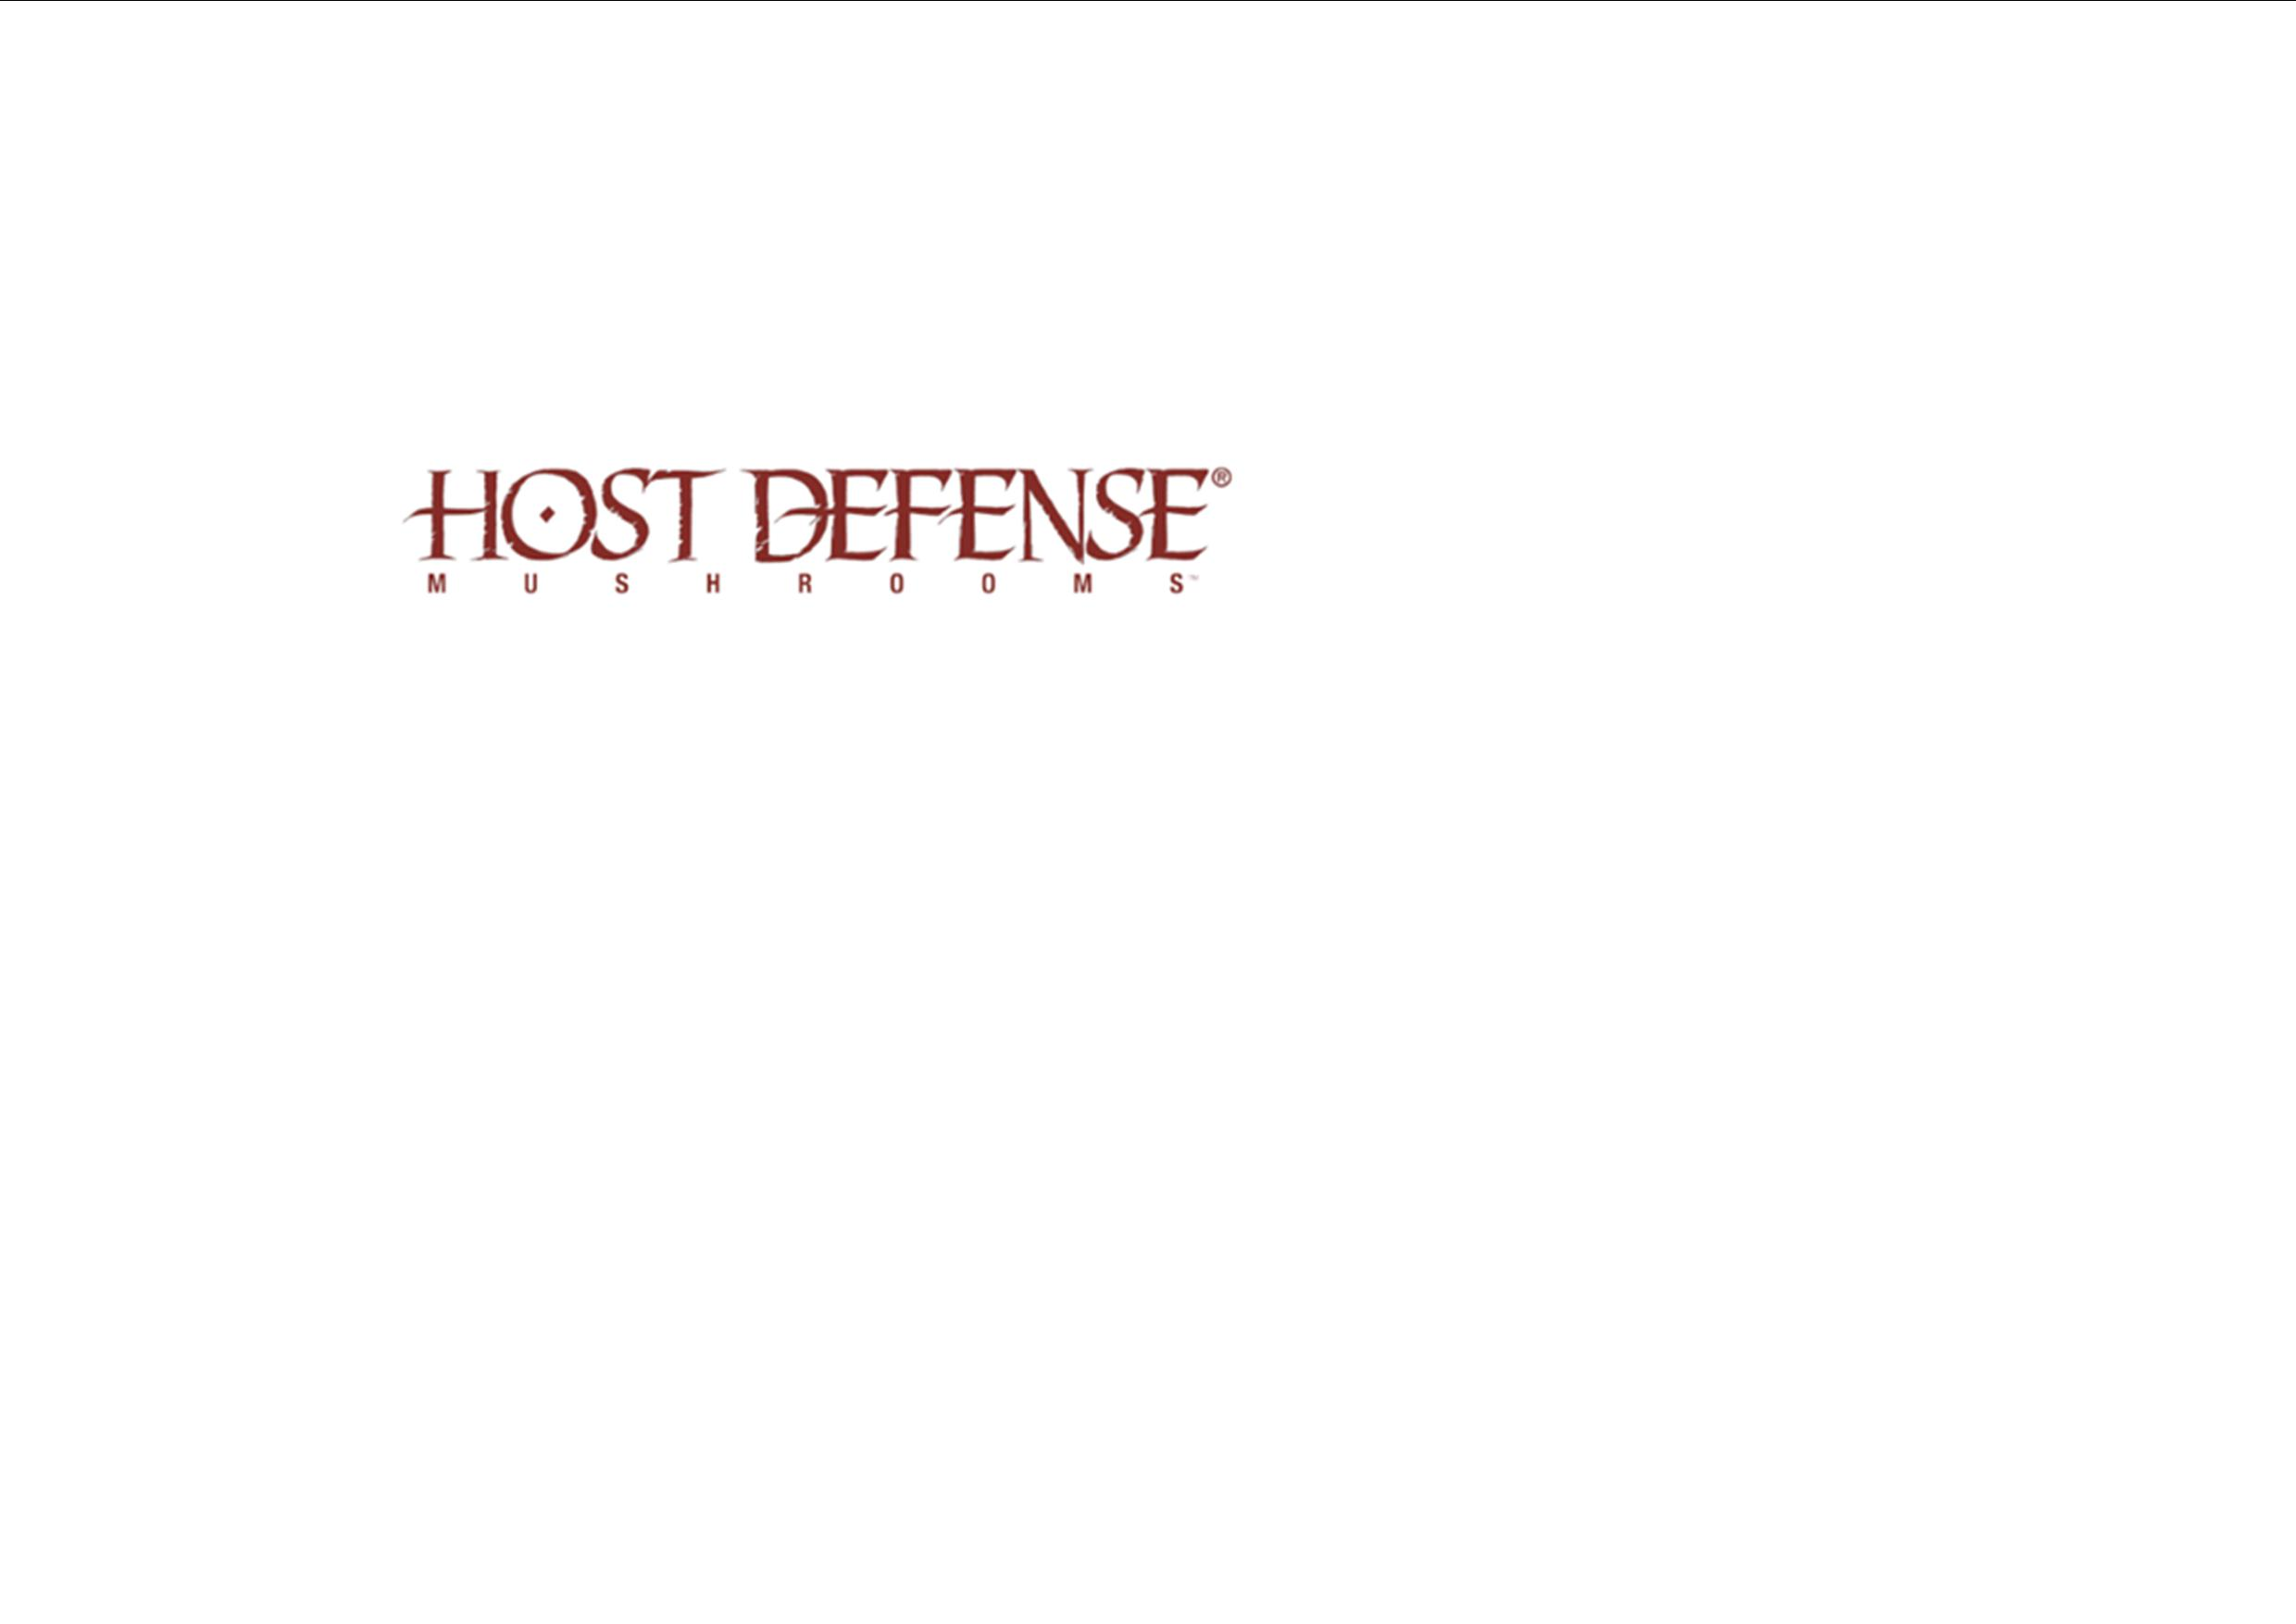 Host Defense.jpg